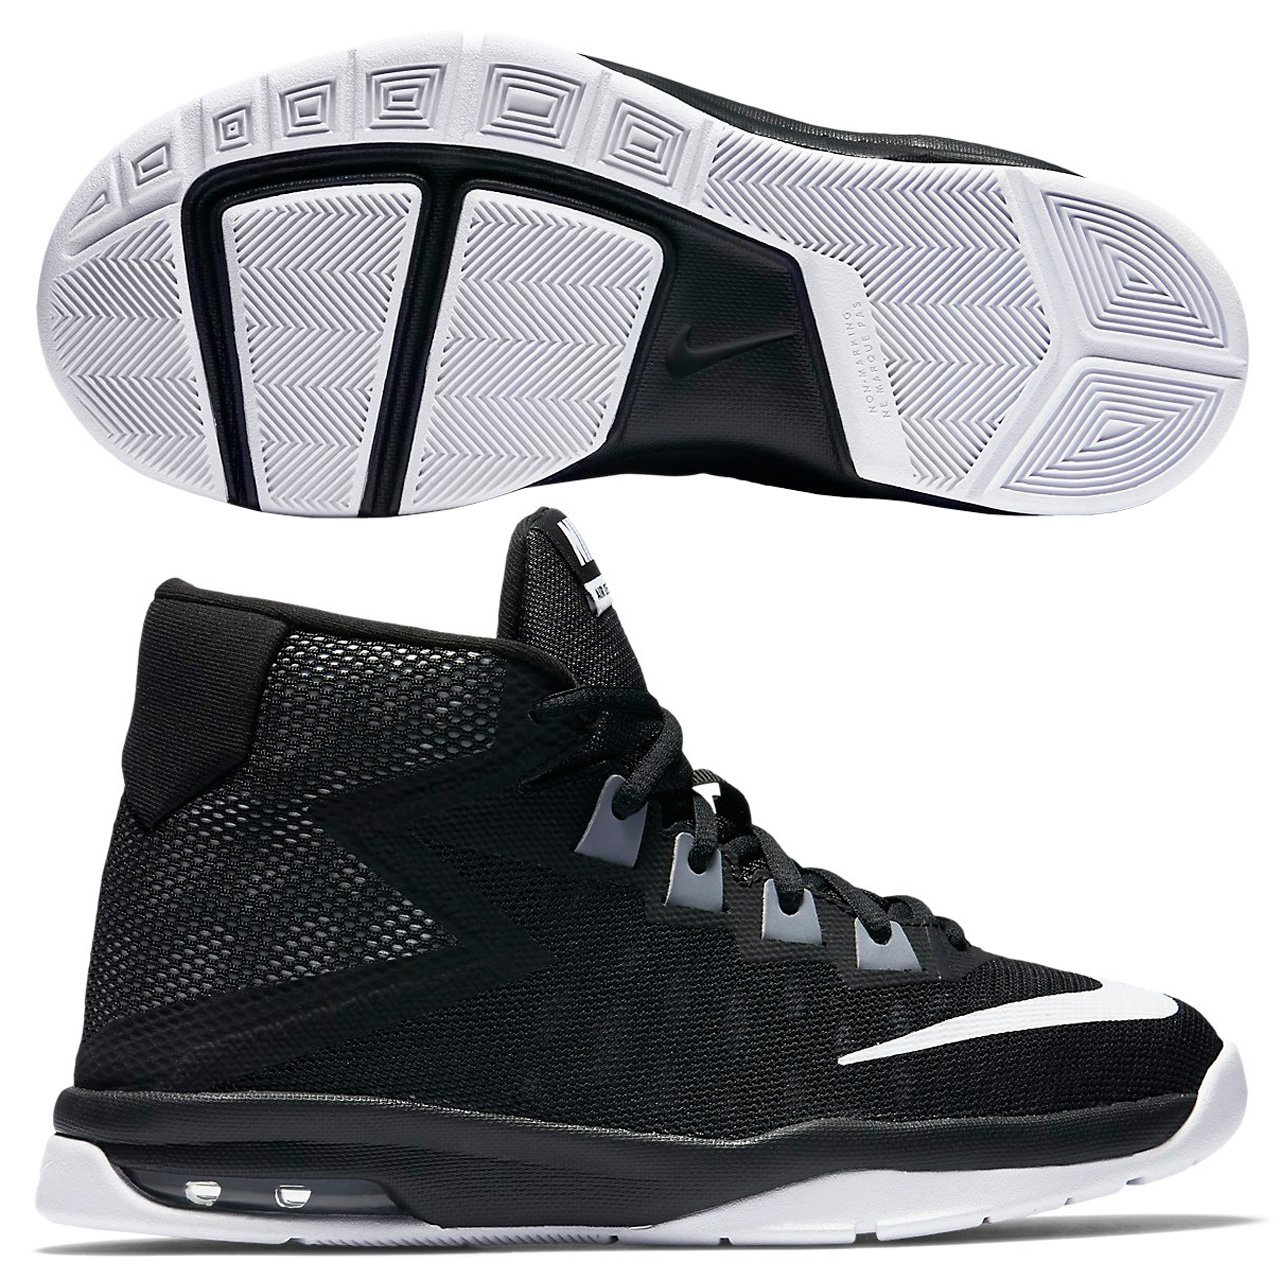 adae2c9e041c Nike Boy s Air Devosion (GS) Basketball Shoe Black White Cool Grey Size 7 M  US  Buy Online at Low Prices in India - Amazon.in